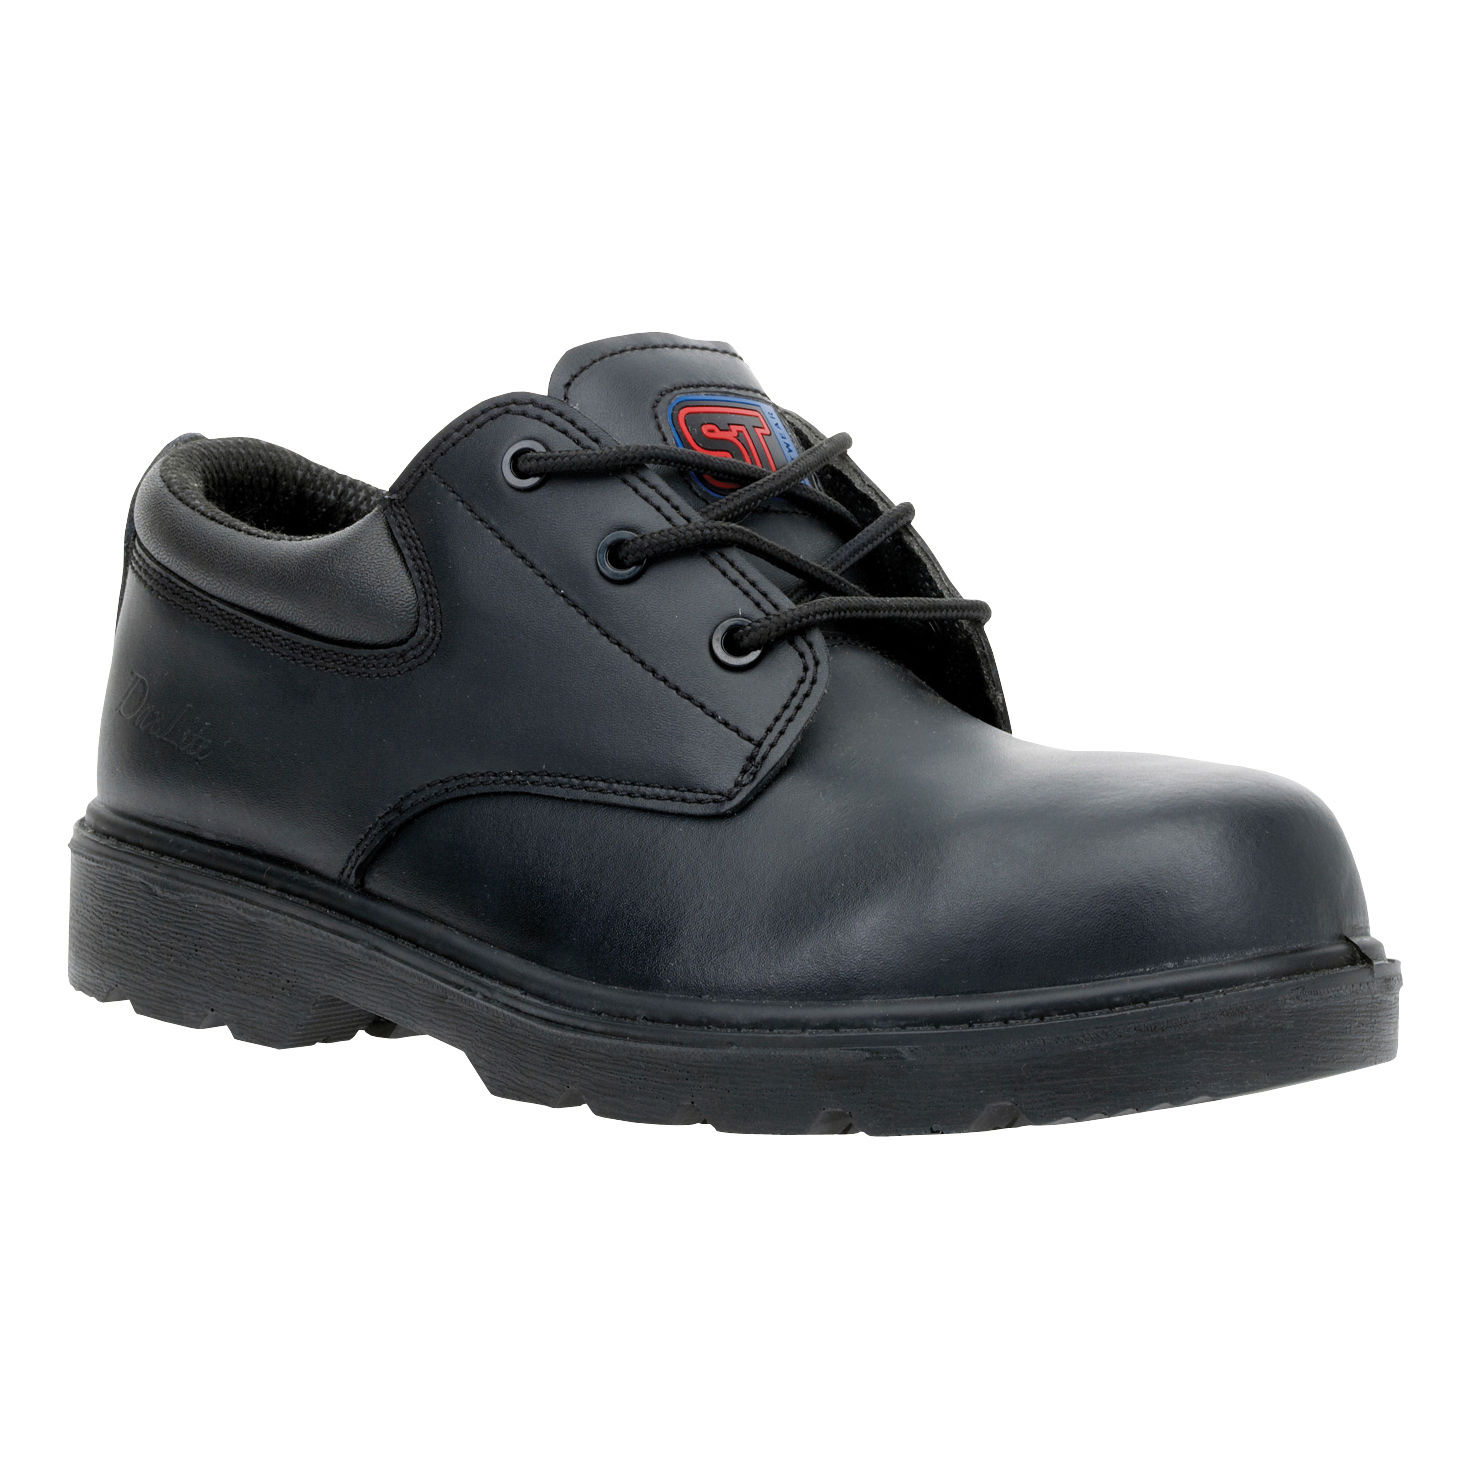 ST Dax Lite Air Comp' Shoe Metal Free Safety Toecap & Midsole Size 10 Blk Ref 90865 *Approx 3 Day L/Time*